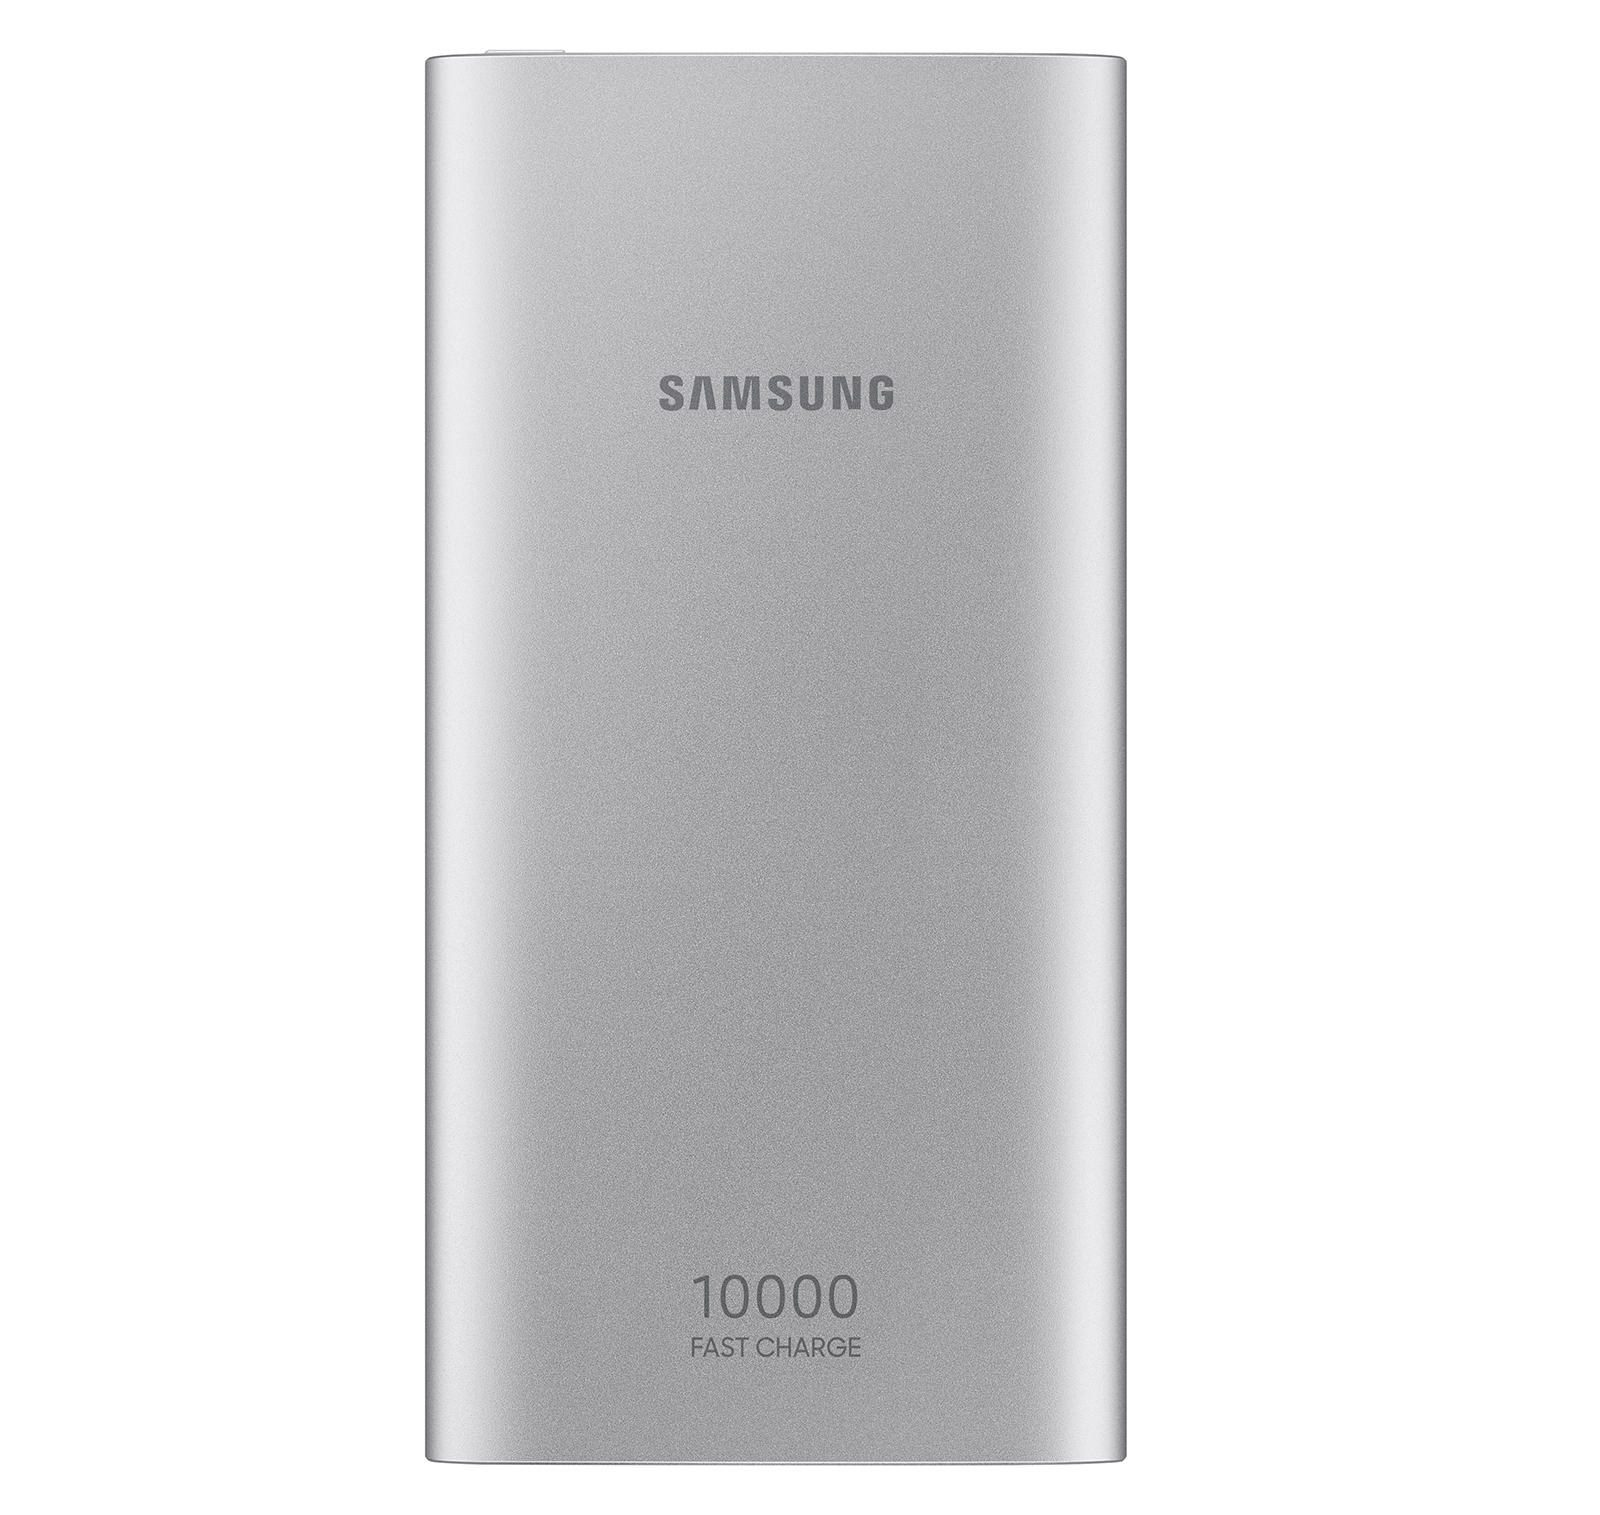 Samsung 10,000 mAh Portable Battery with USB-C Cable, Silver